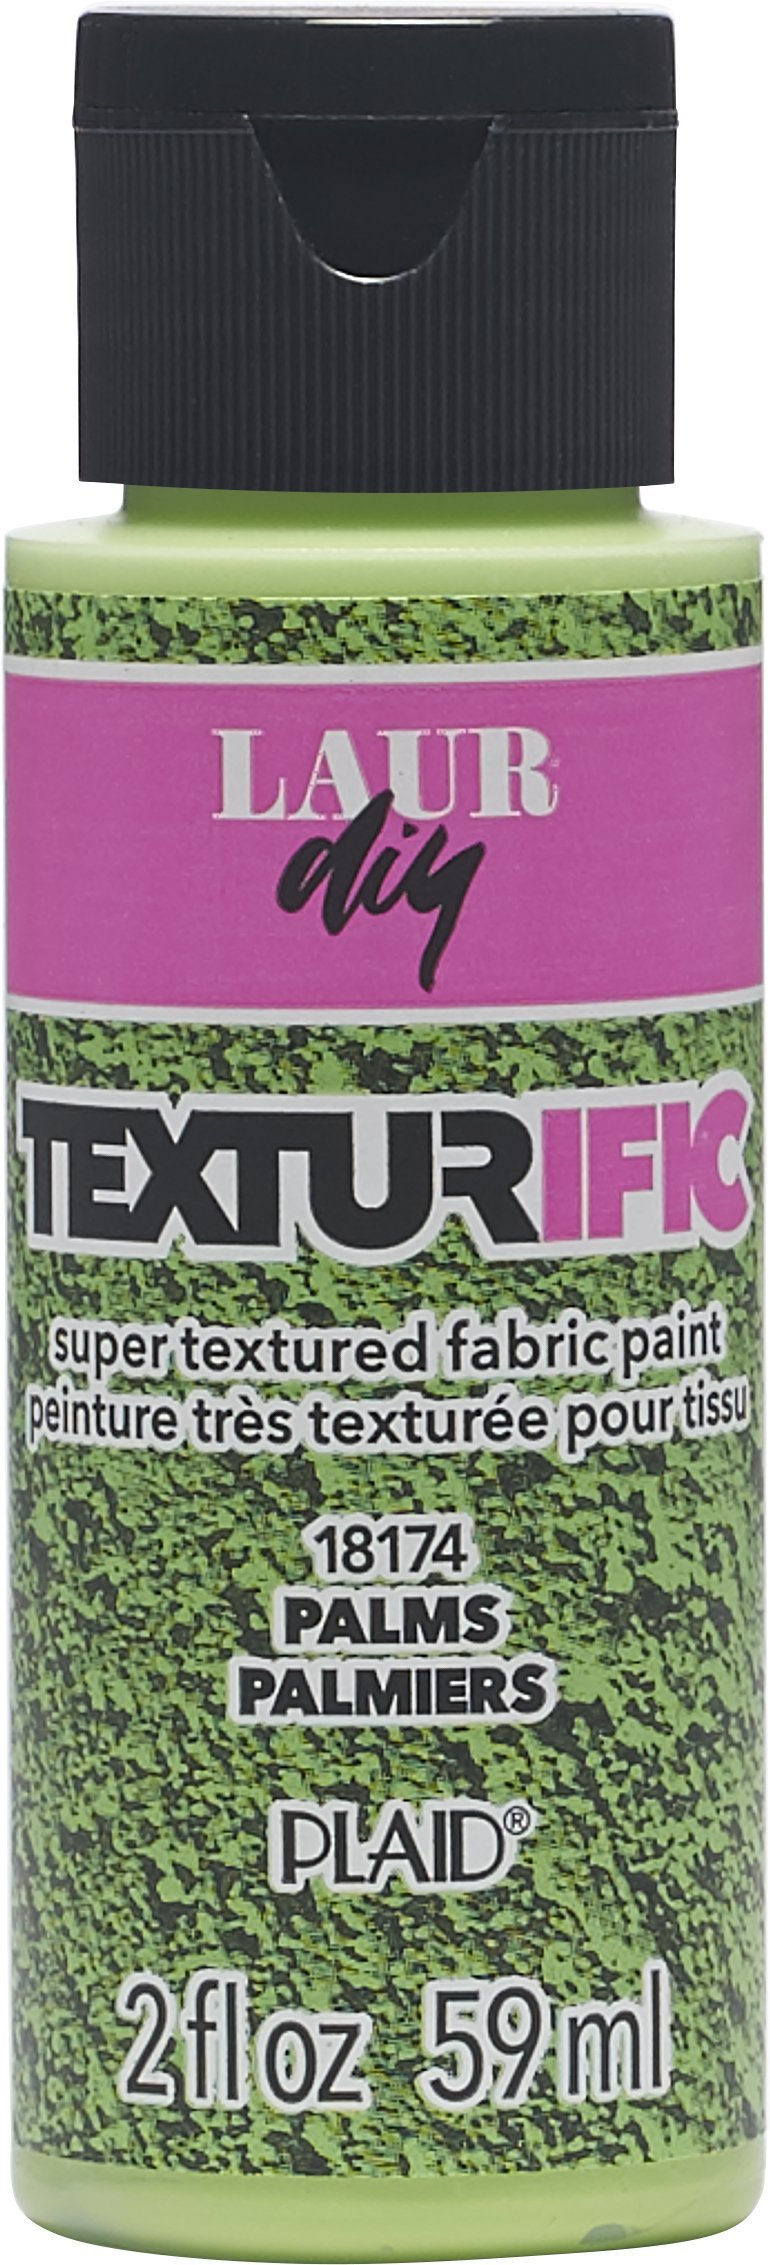 LaurDIY Texturific Fabric Paint, 2 oz, Palms